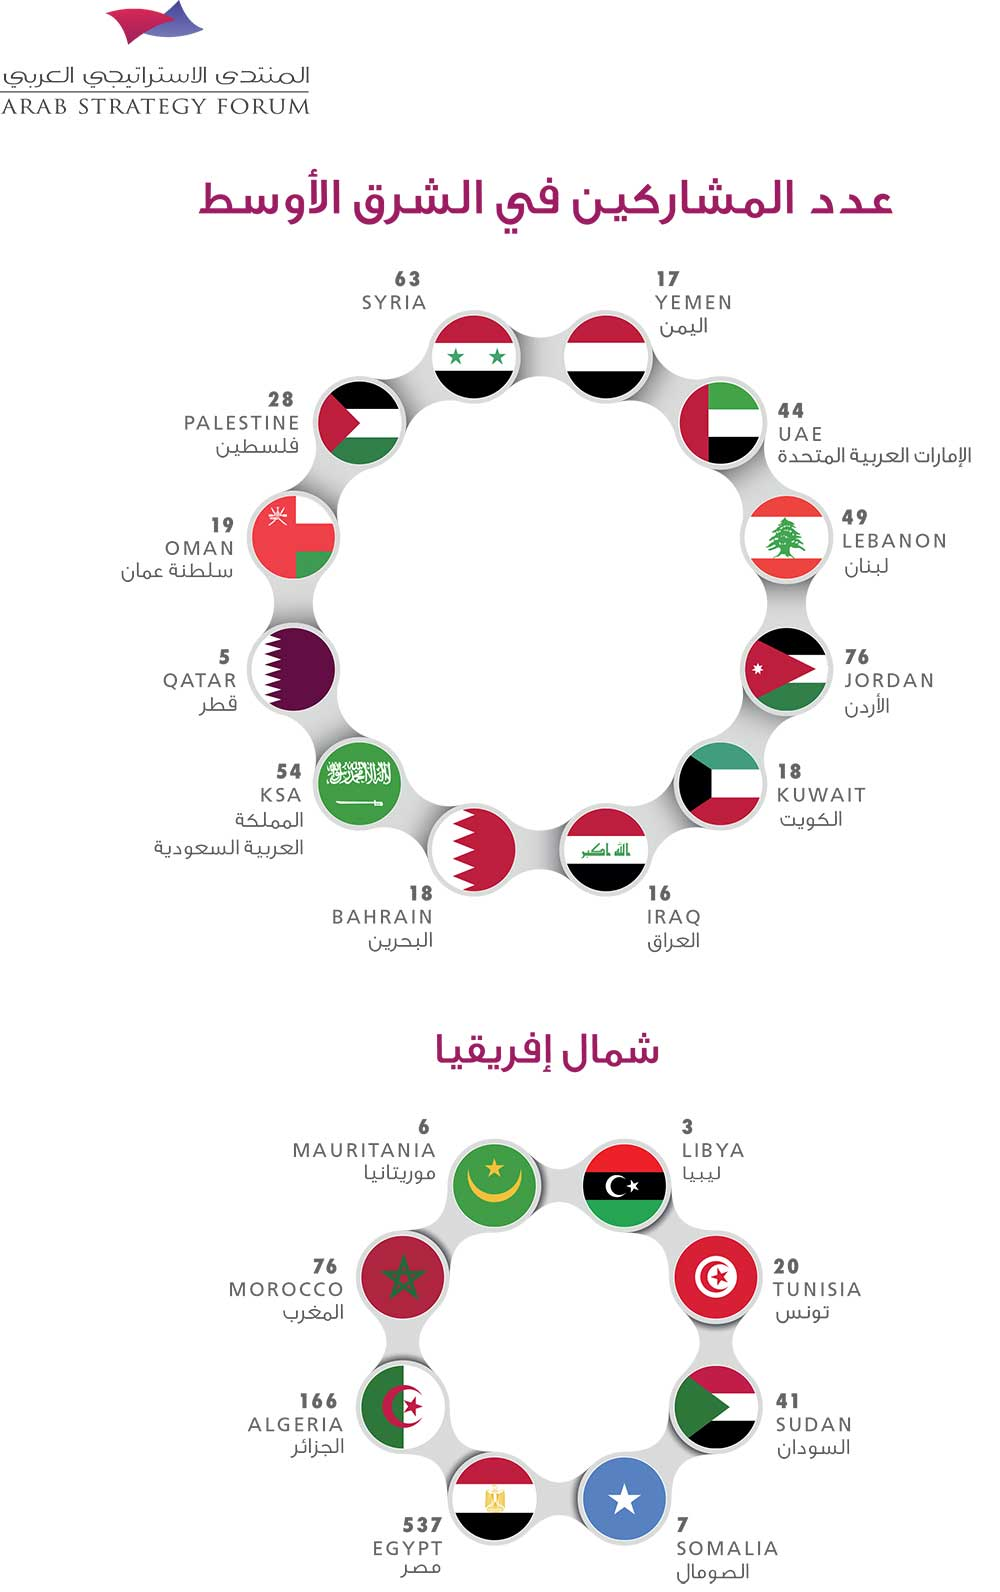 More than 3000 participants in the Arab Strategic Forum